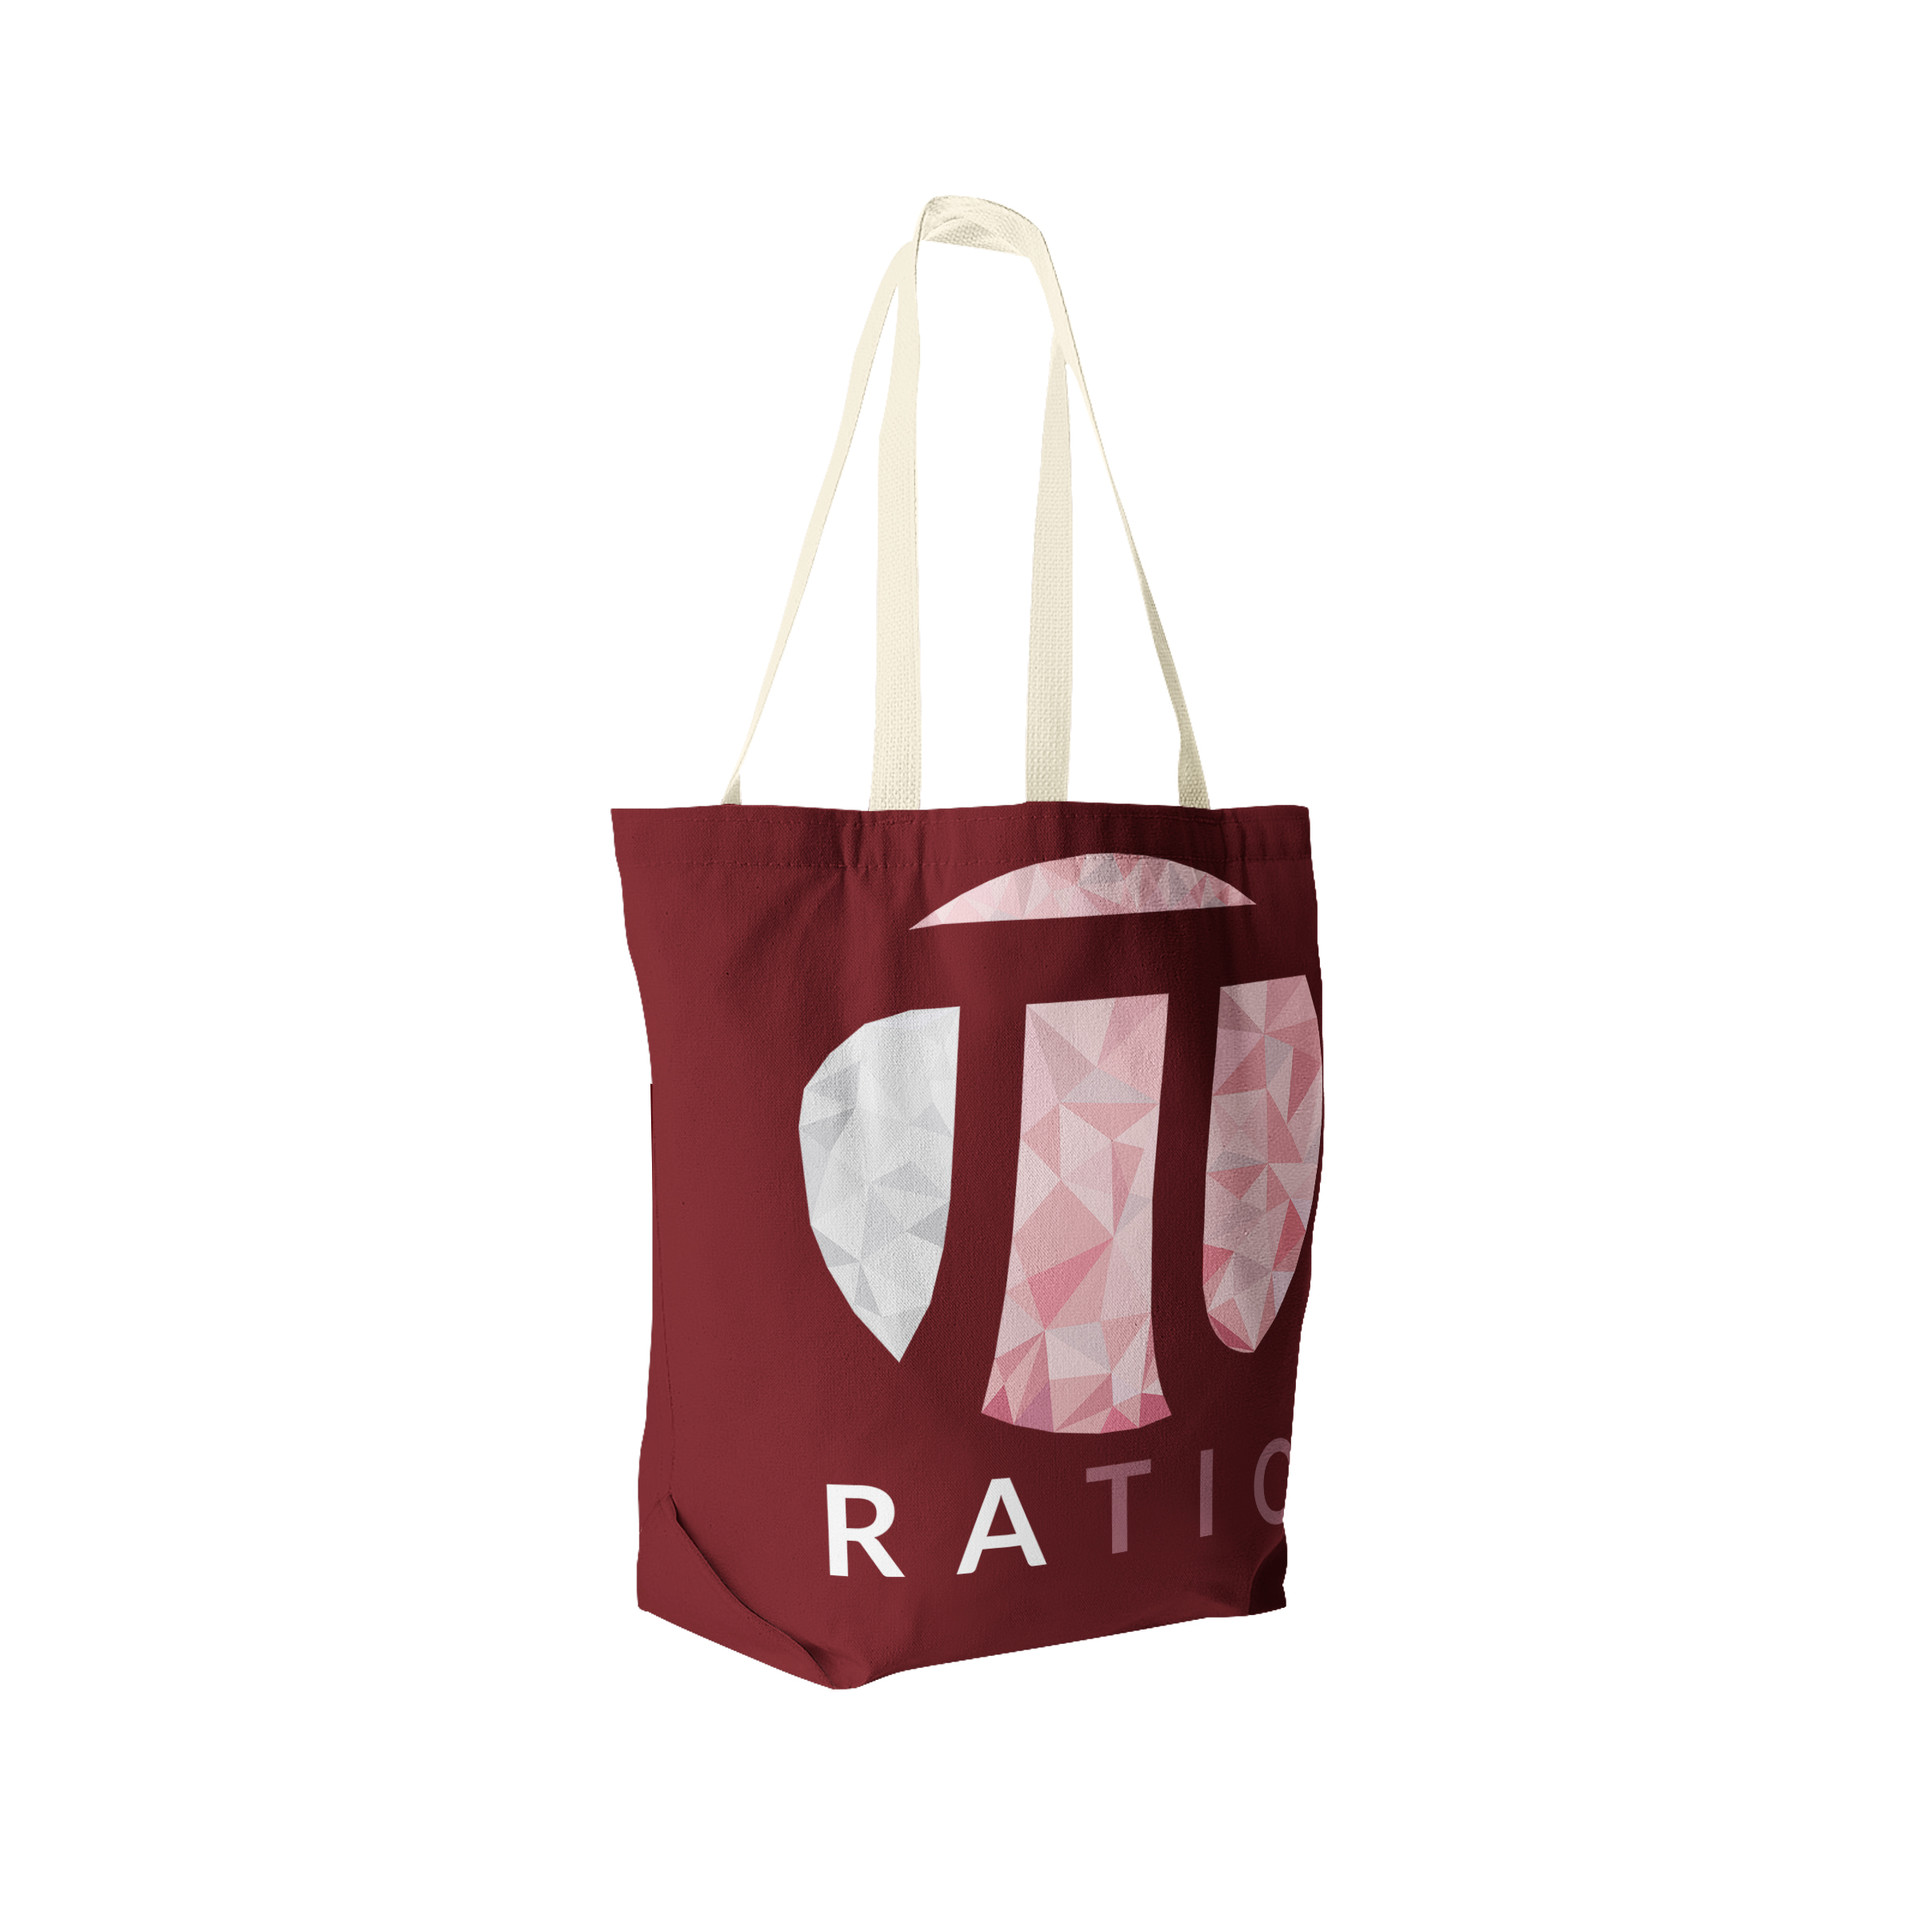 Jerry ubah ratio tote bag perspective view 2